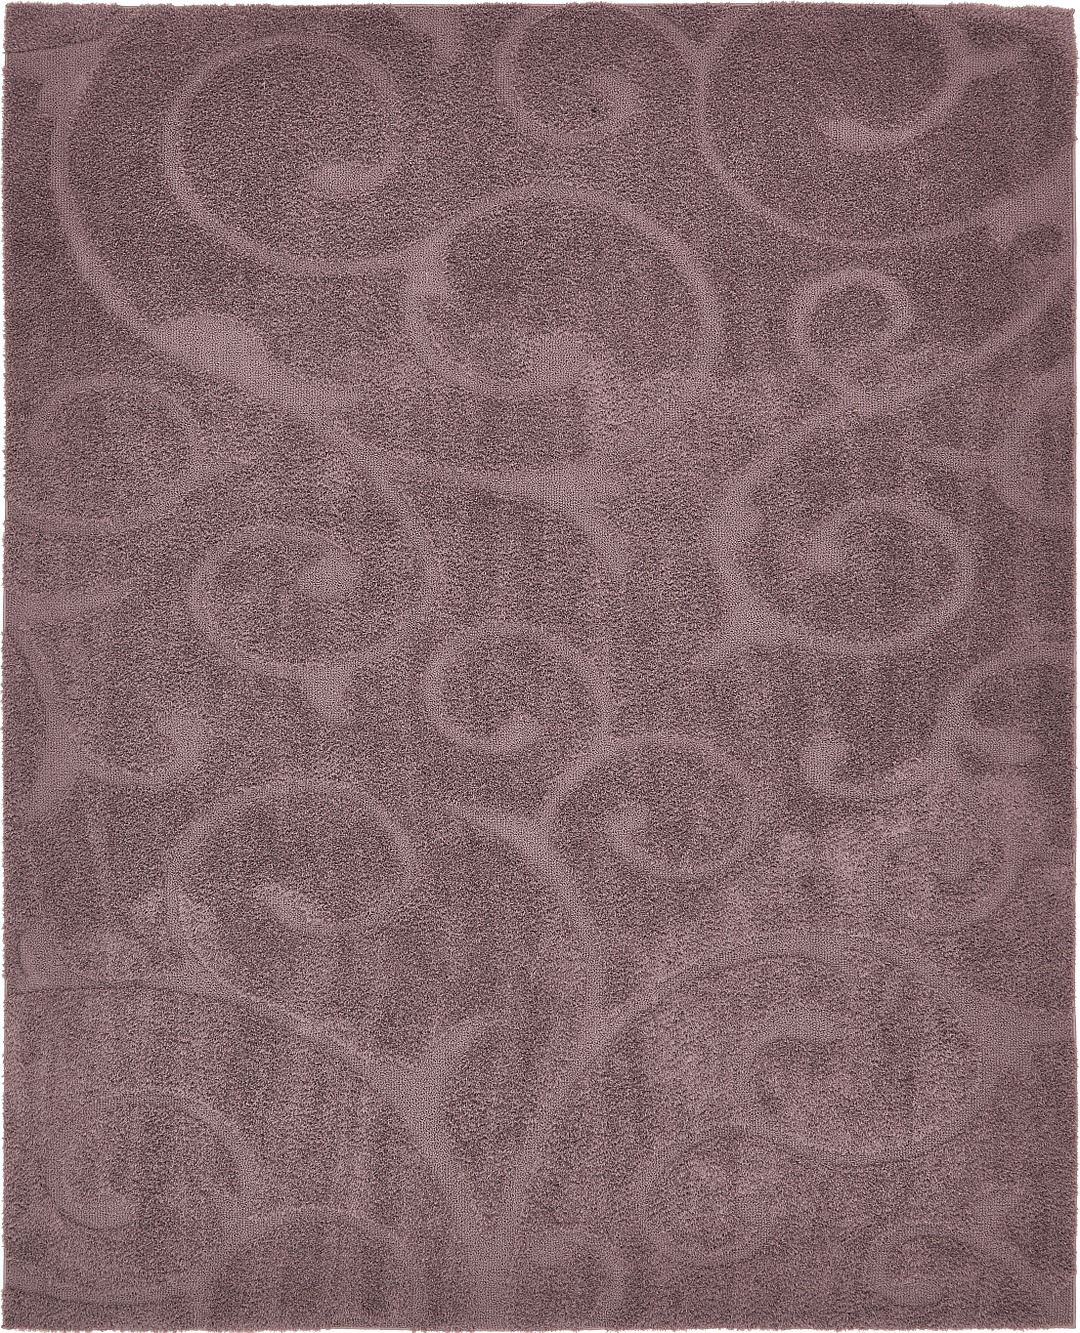 Shaggy Wool Rugs: Modern Area Rug Shaggy Small Carved Carpet Plush Style